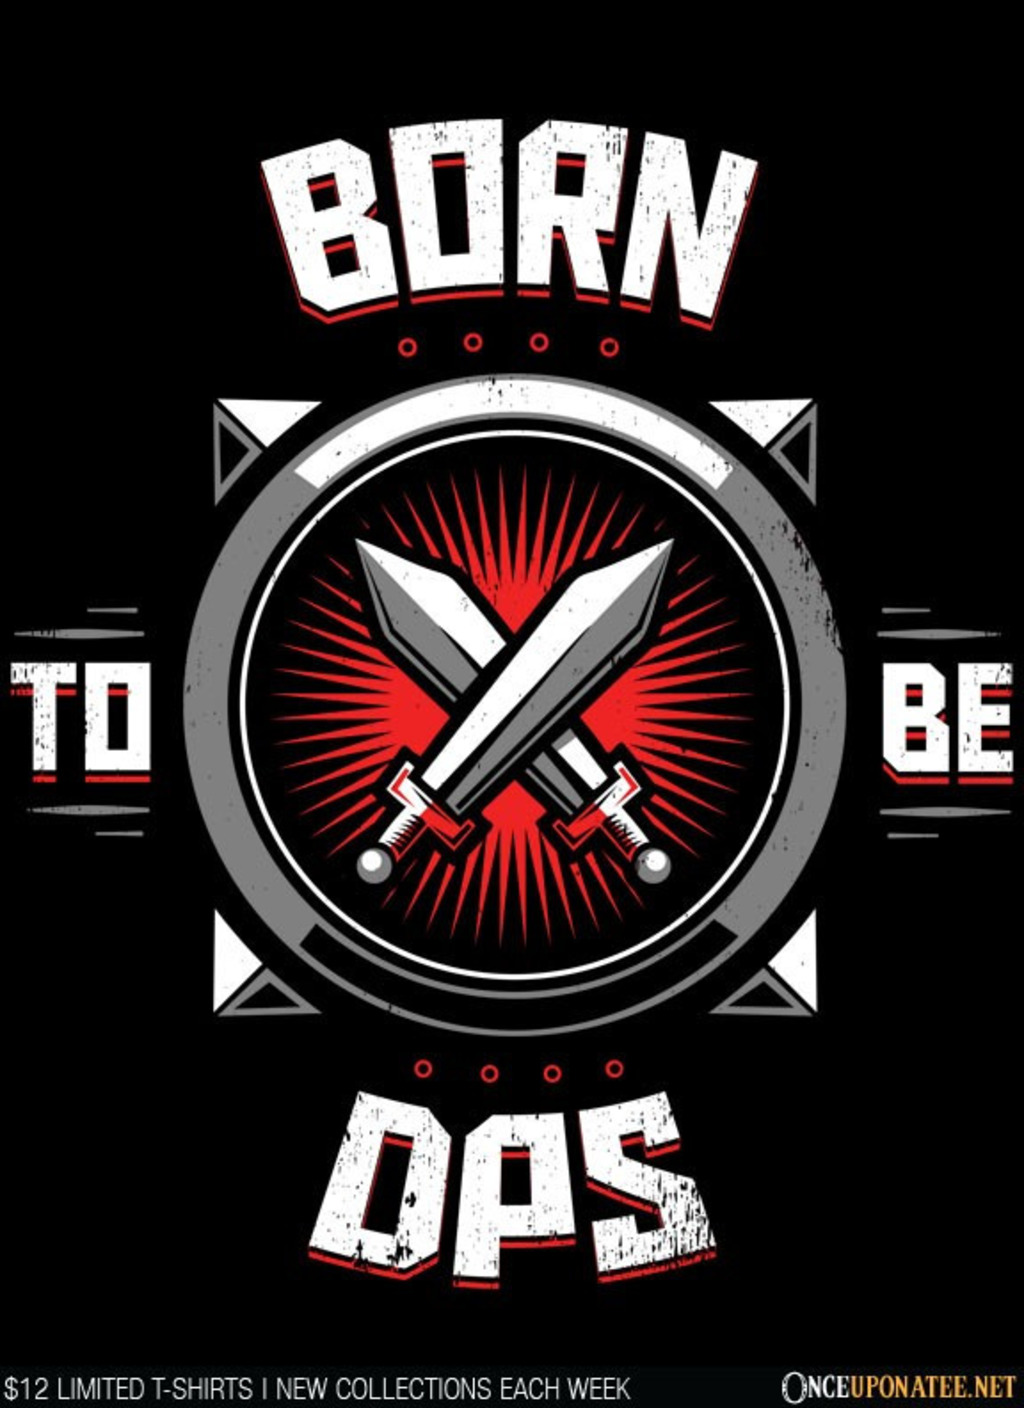 Once Upon a Tee: Born to Be DPS